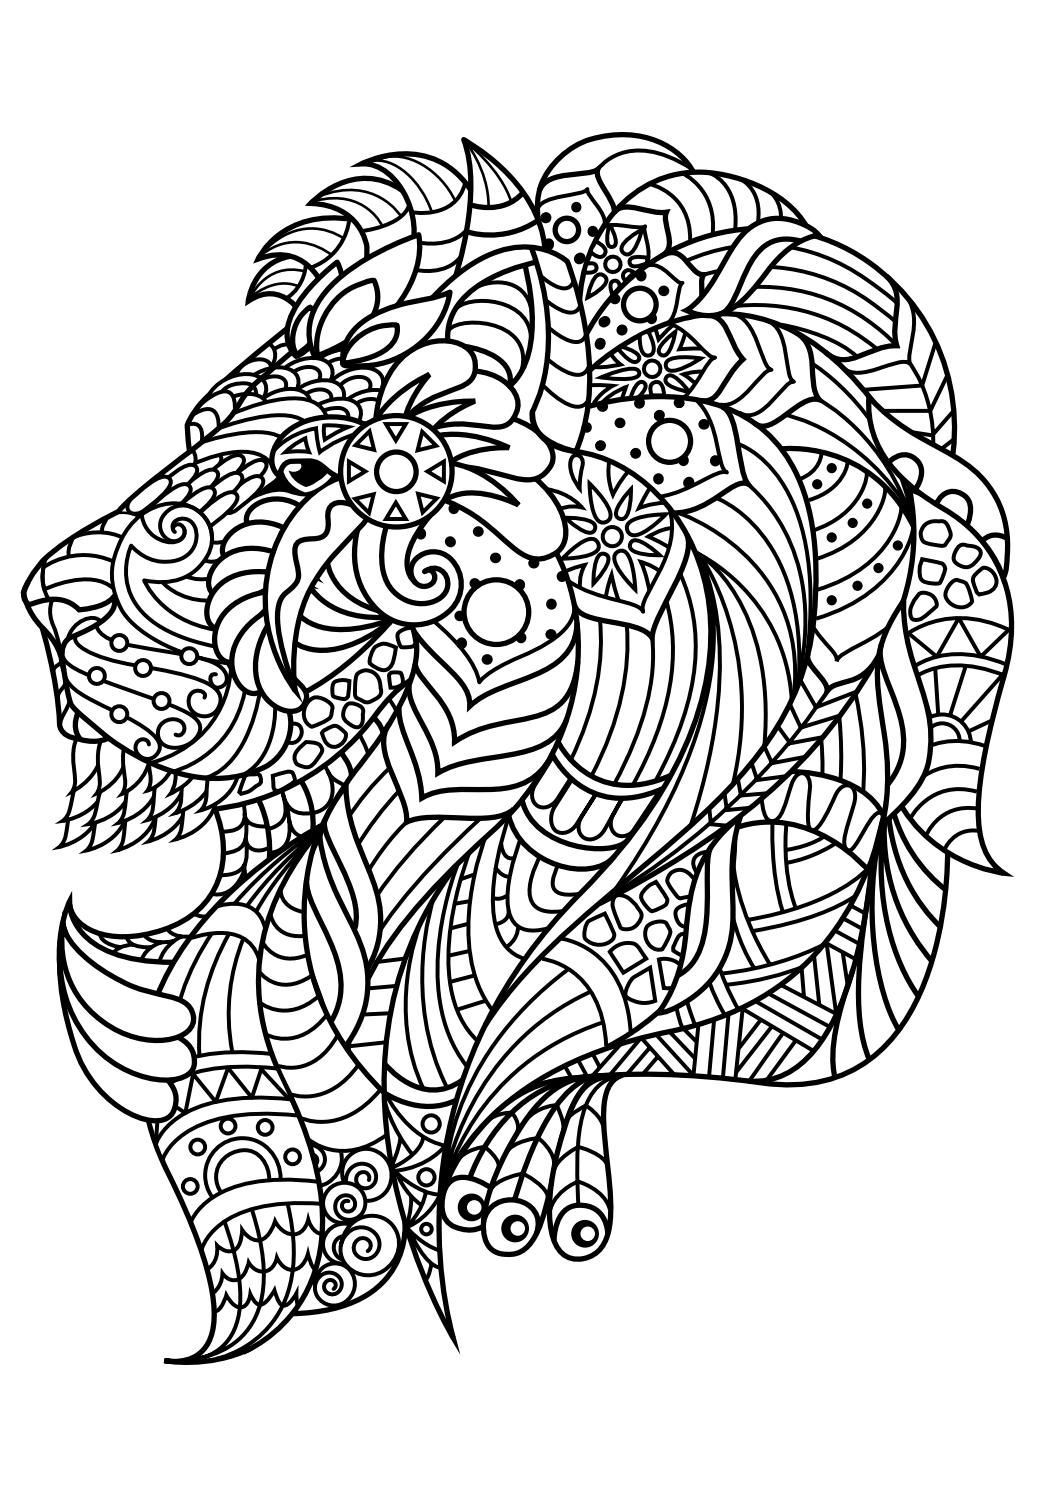 100 Best Animal Coloring Pages Pdf Coloring Animals Adult Top Image Gallery Collection Lion Coloring Pages Animal Coloring Books Adult Coloring Animals